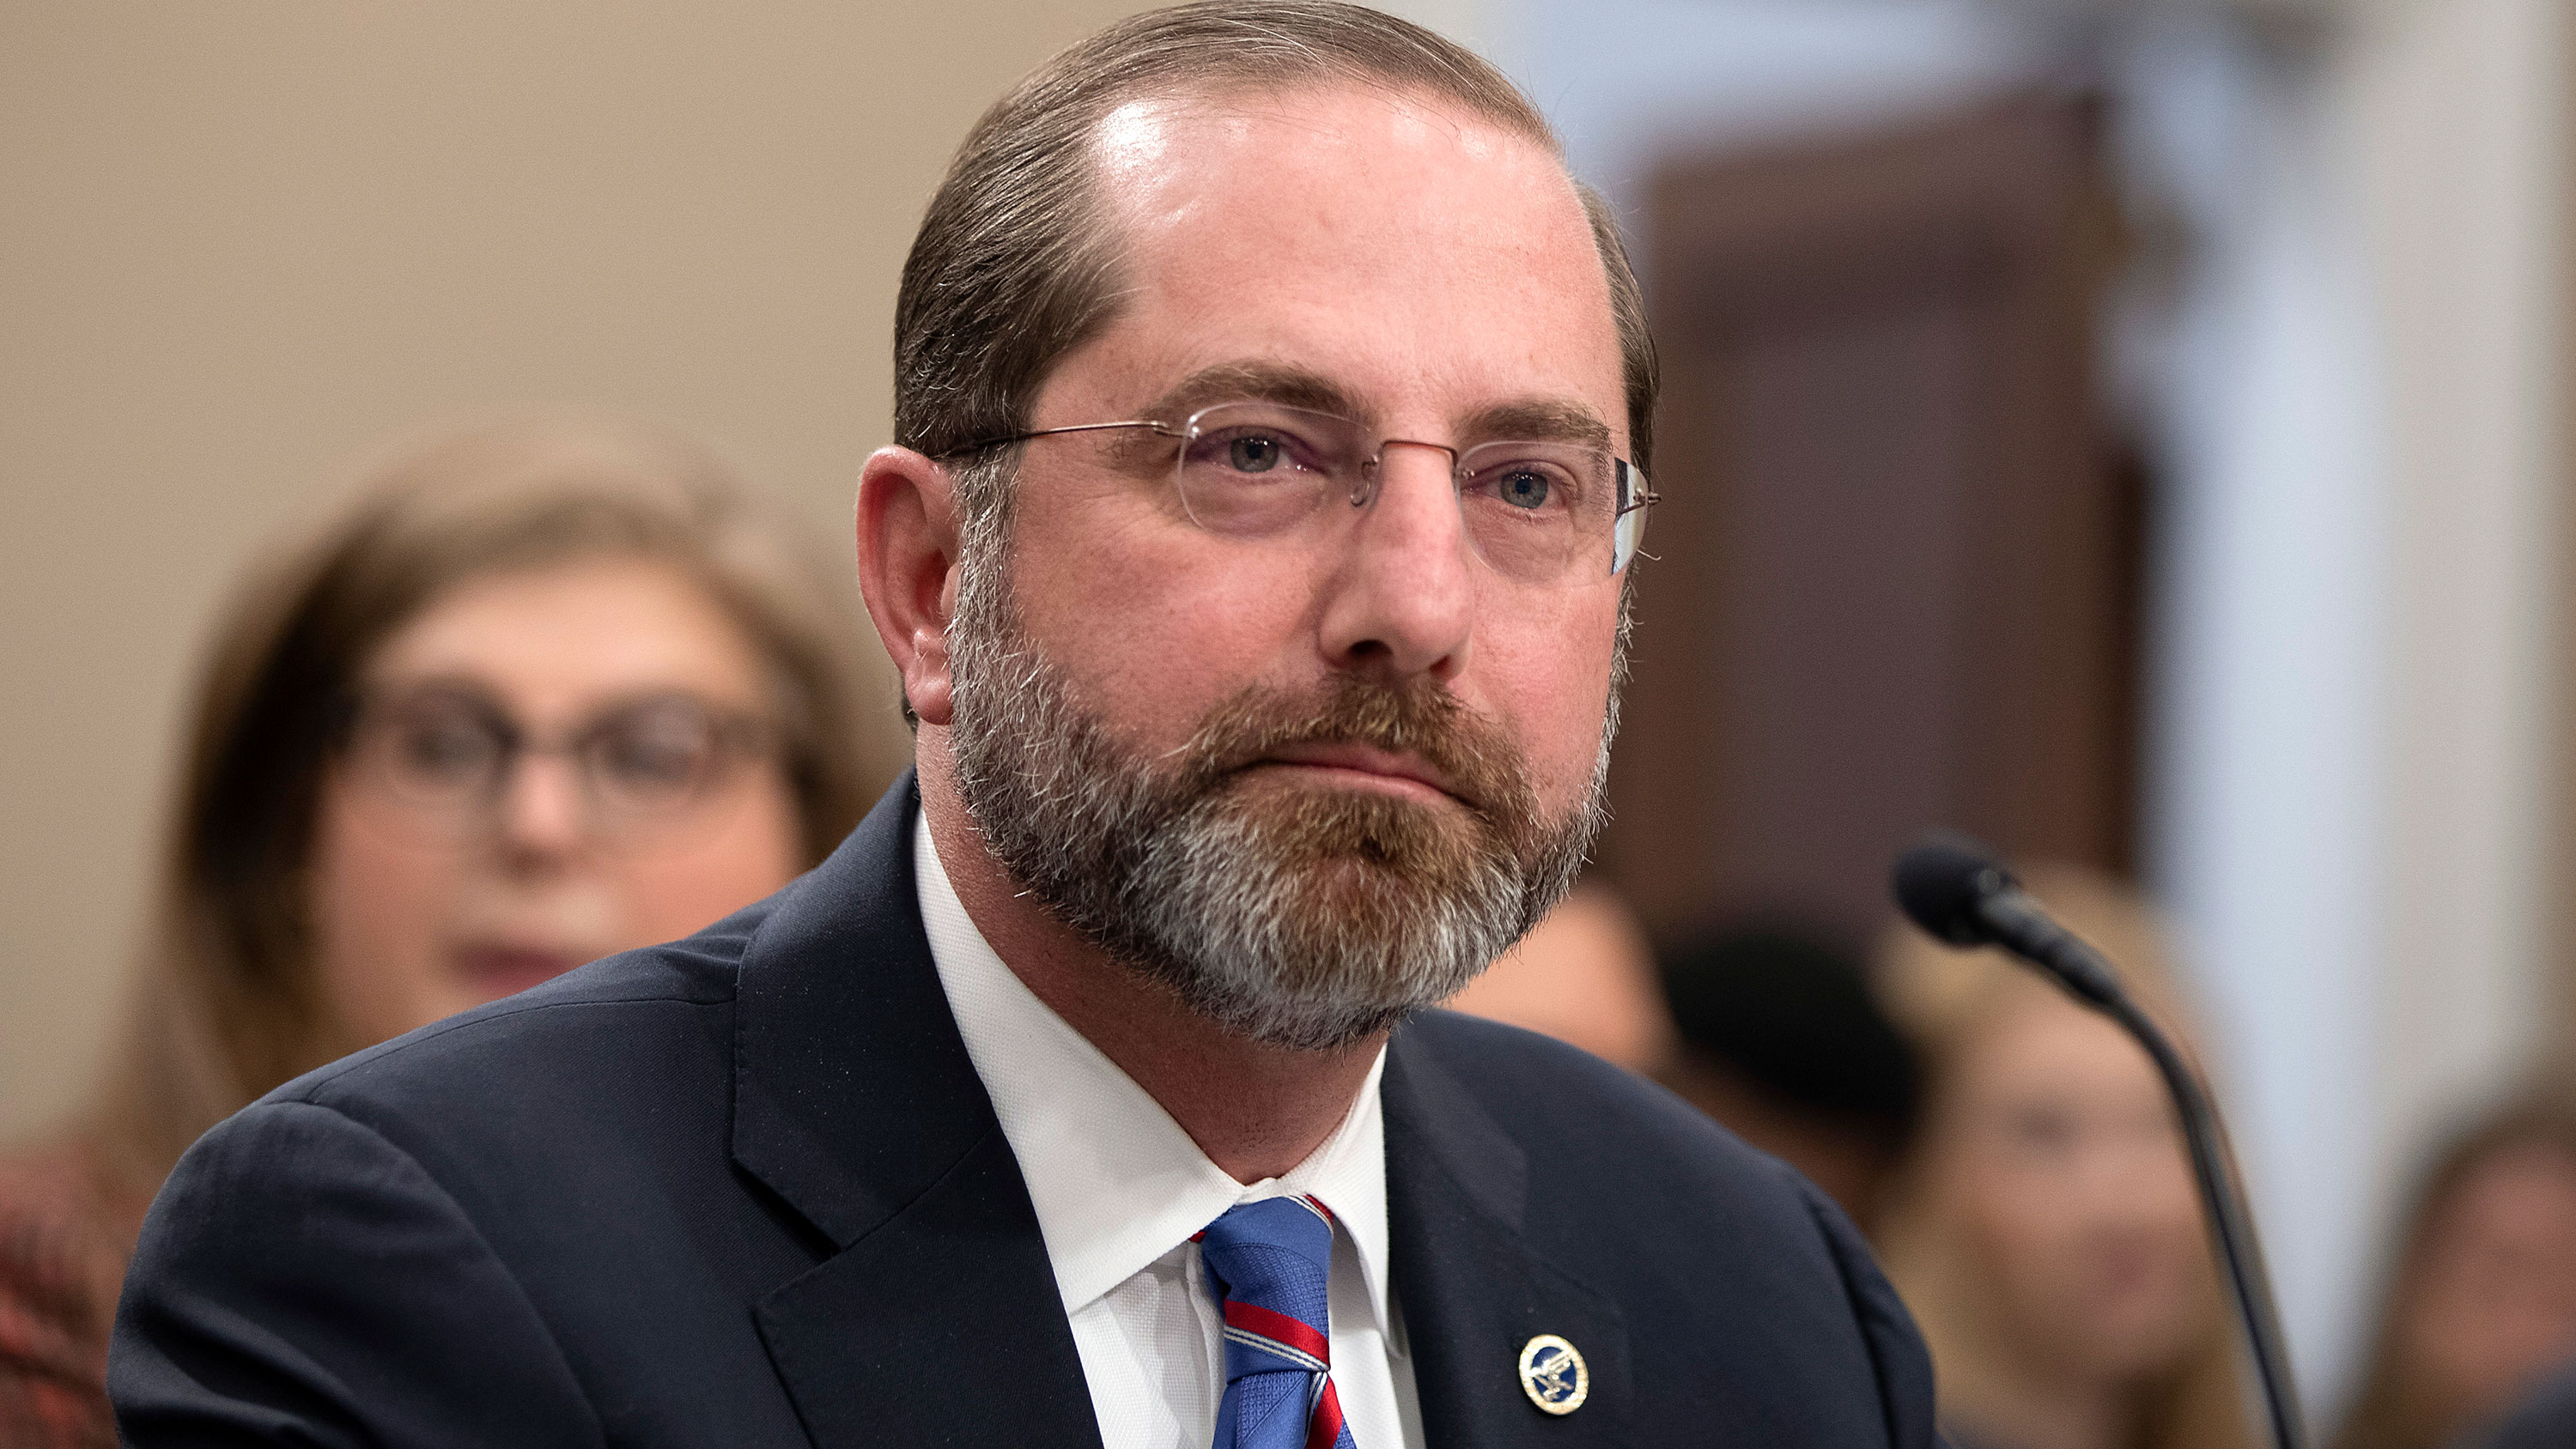 Department of Health and Human Services Secretary Alex Azar at the House Appropriations Committeehearing on February 26.